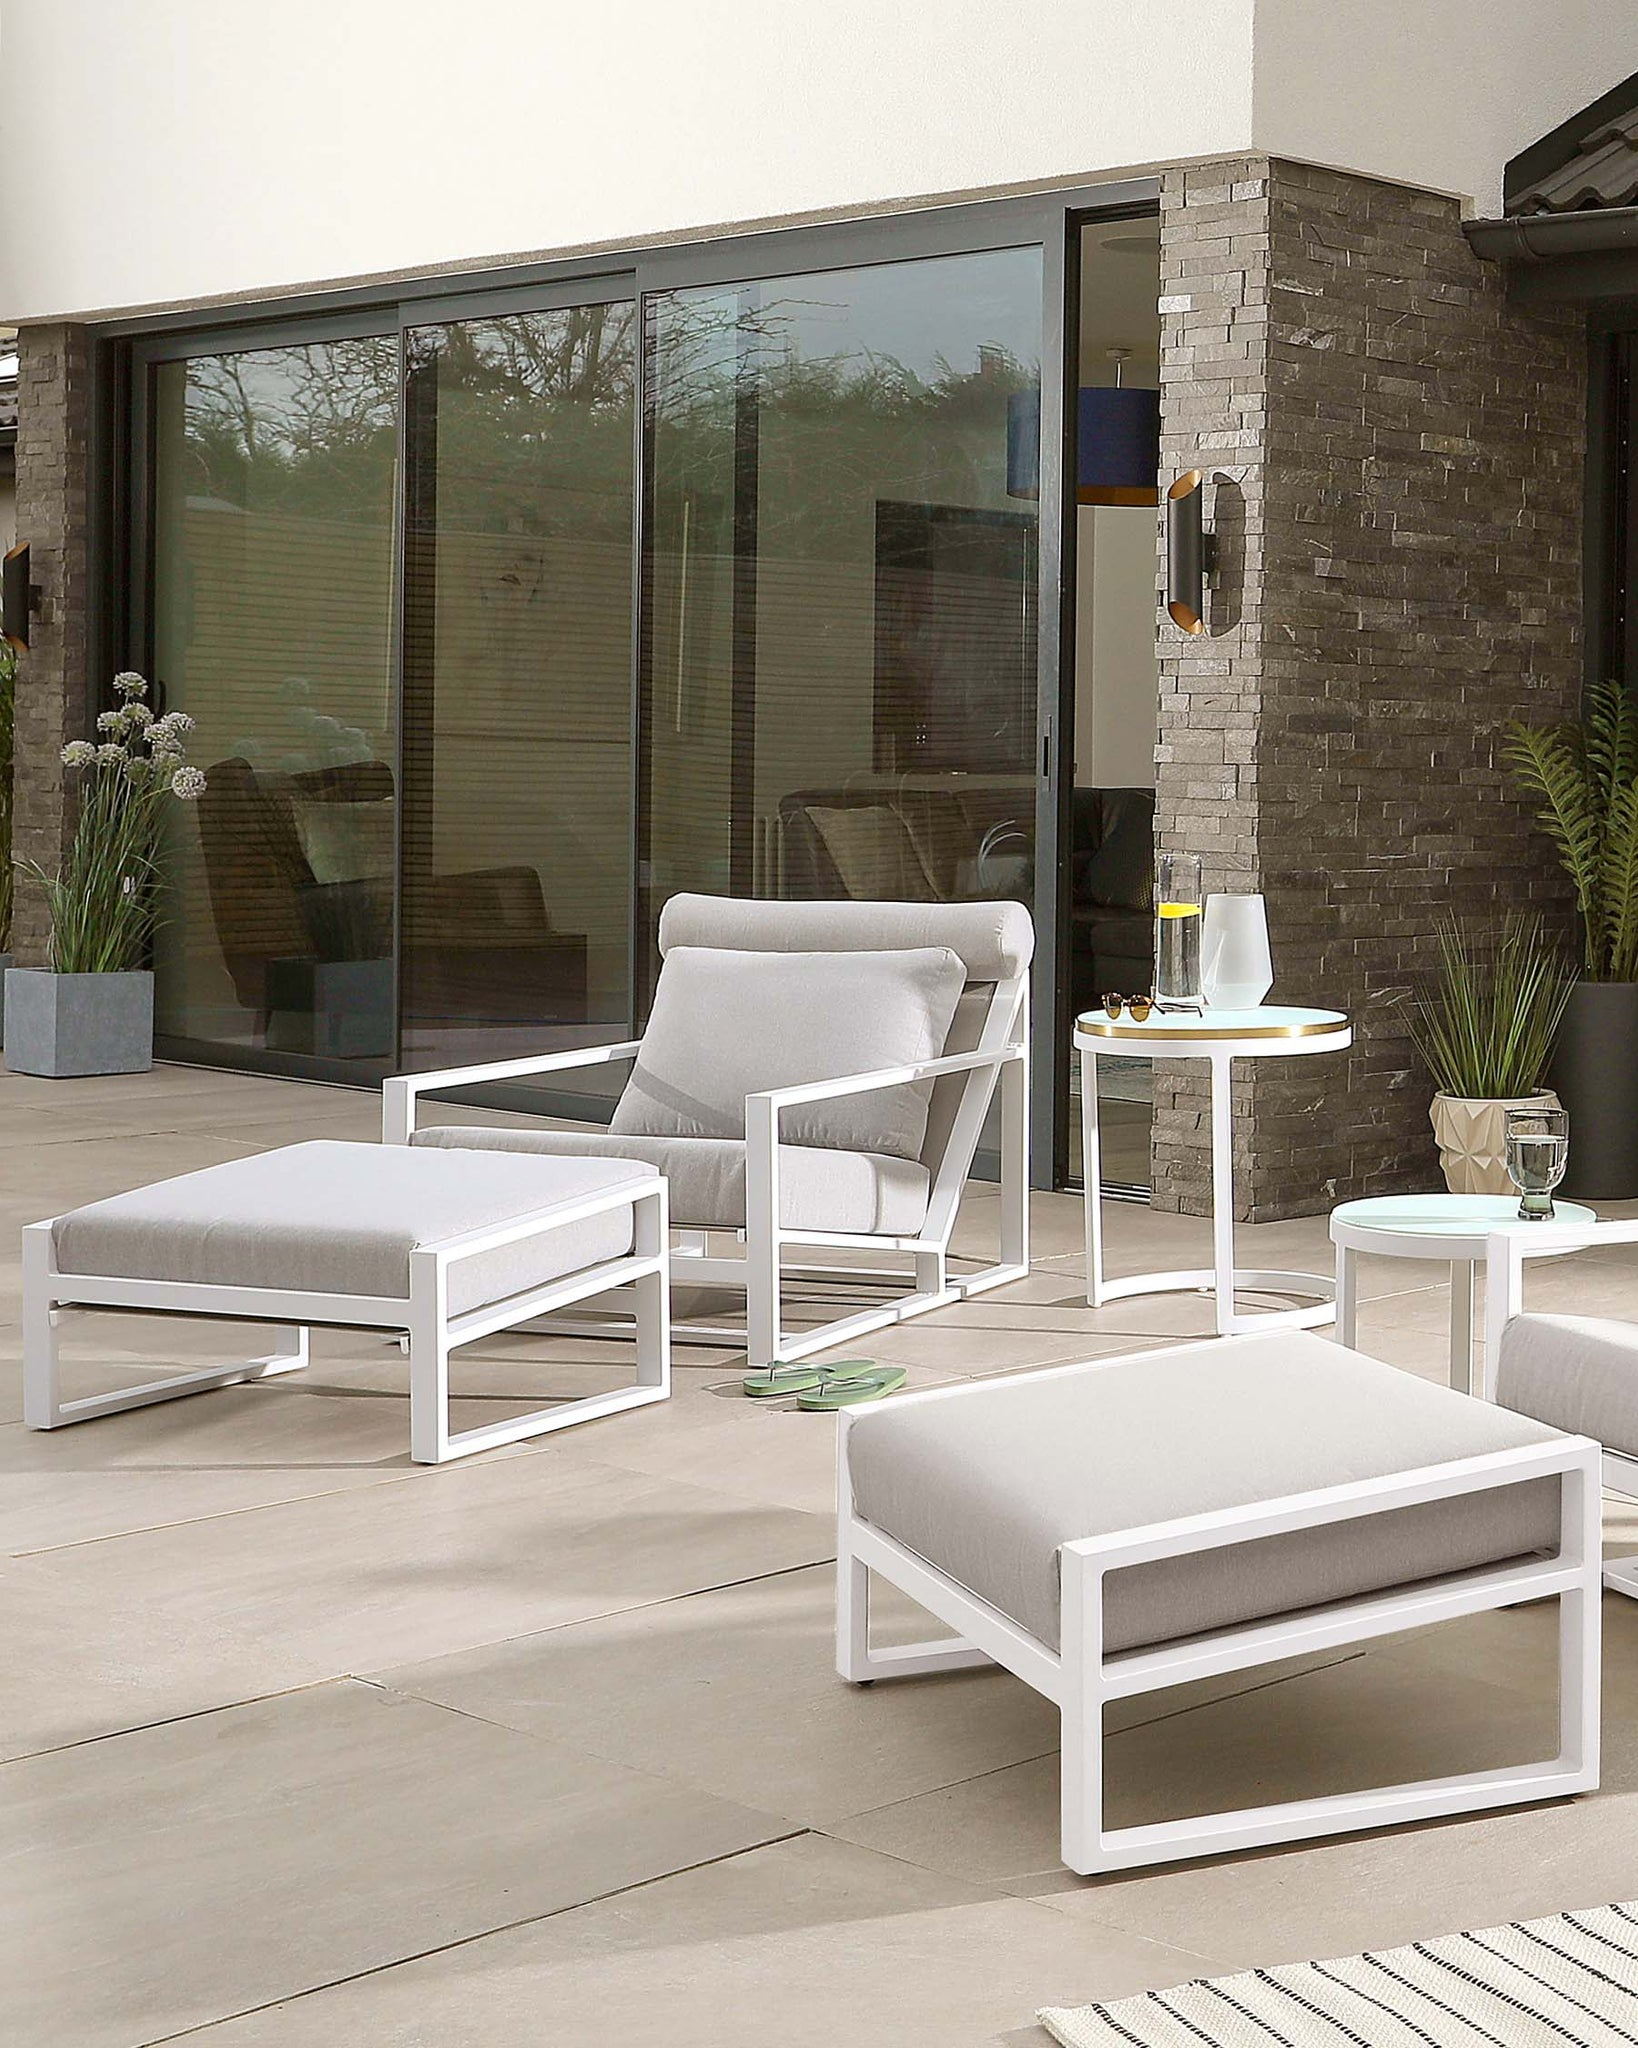 Cala White Frosted Glass Aluminium Garden Side Table Set